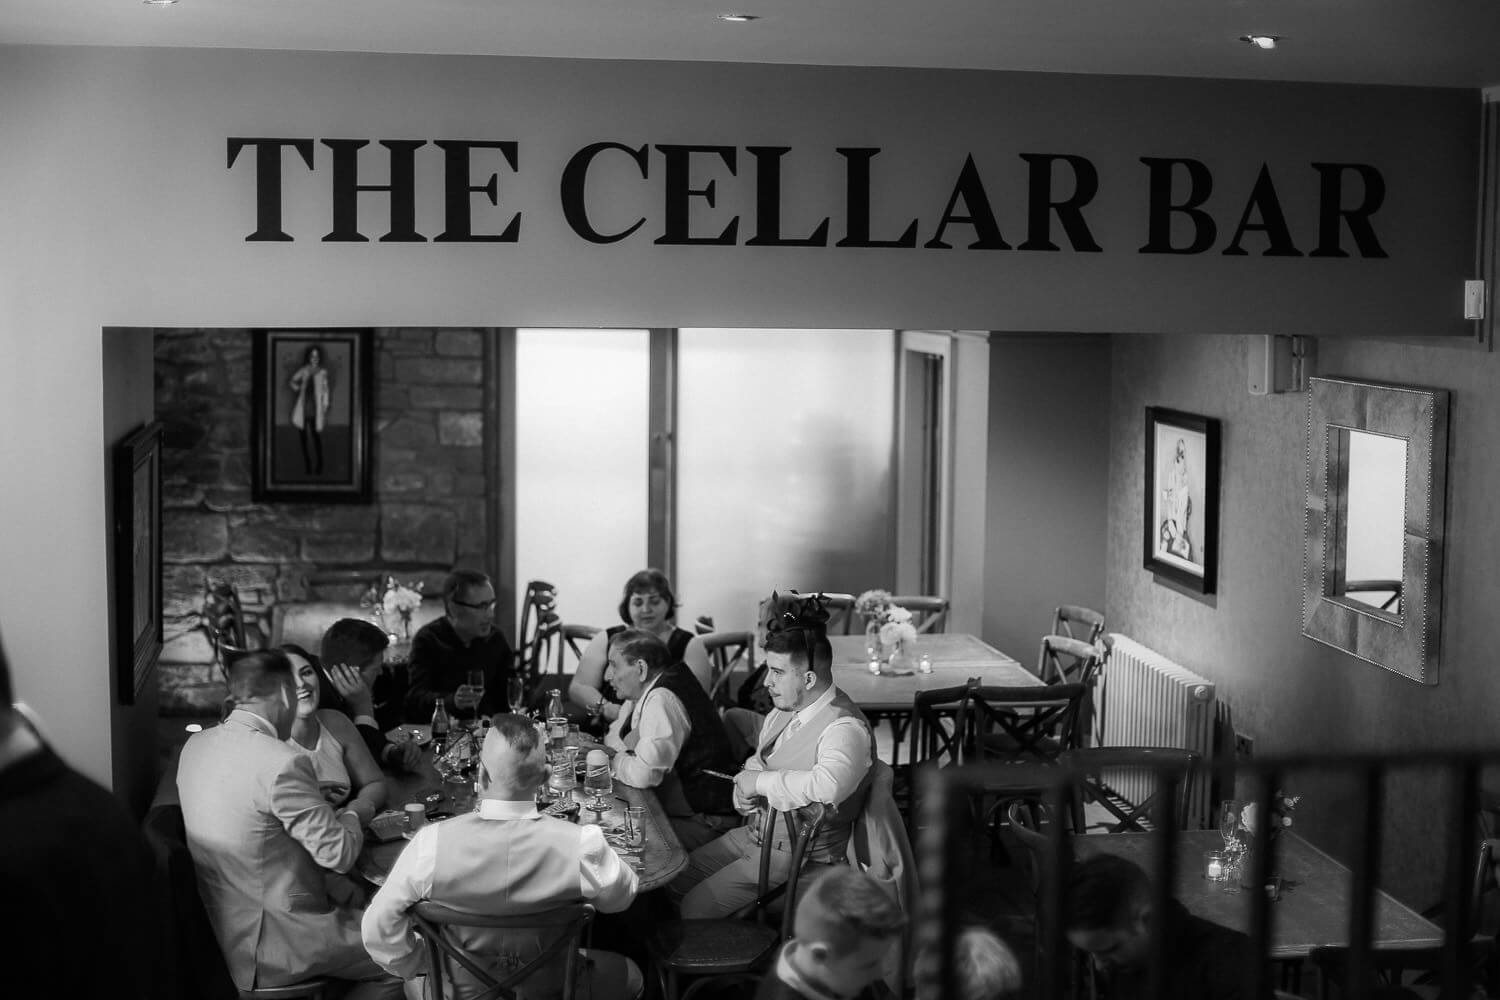 The Cellar bar West tower